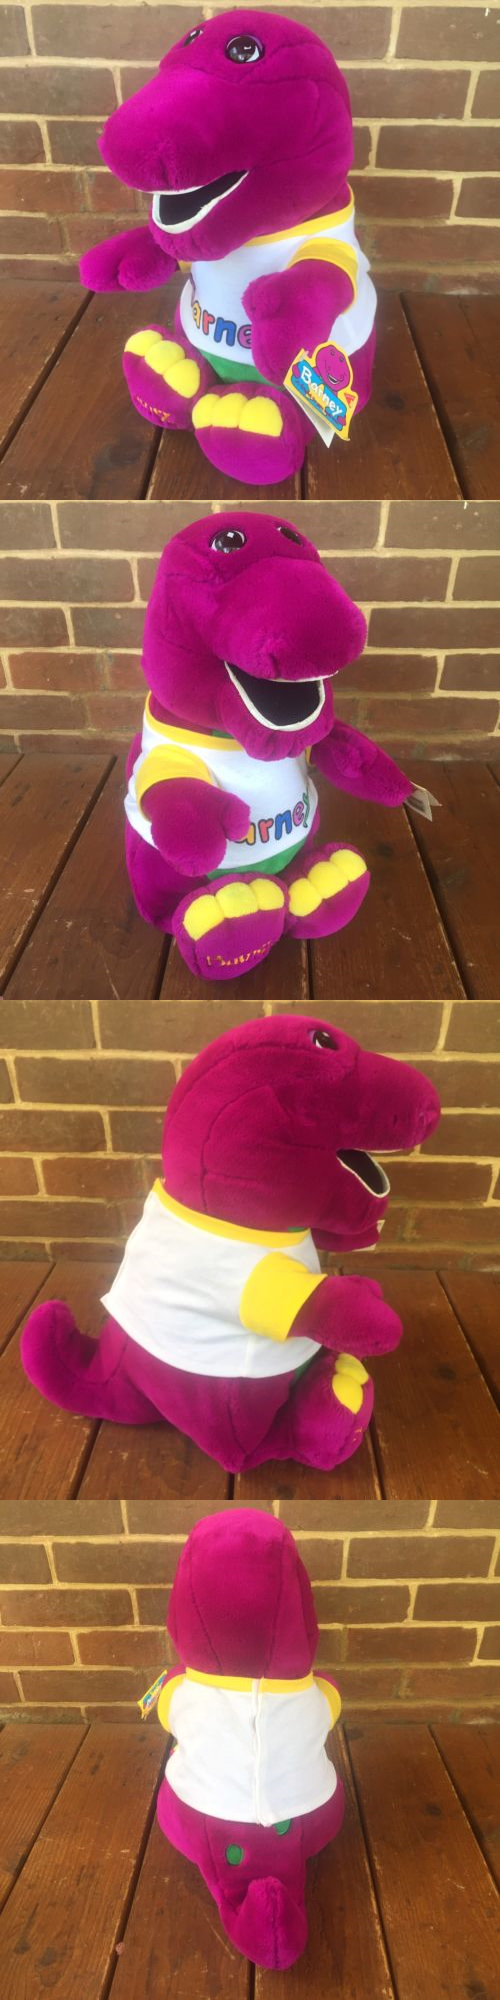 barney 2625 barney friend plush toy 12 bj u003e buy it now only